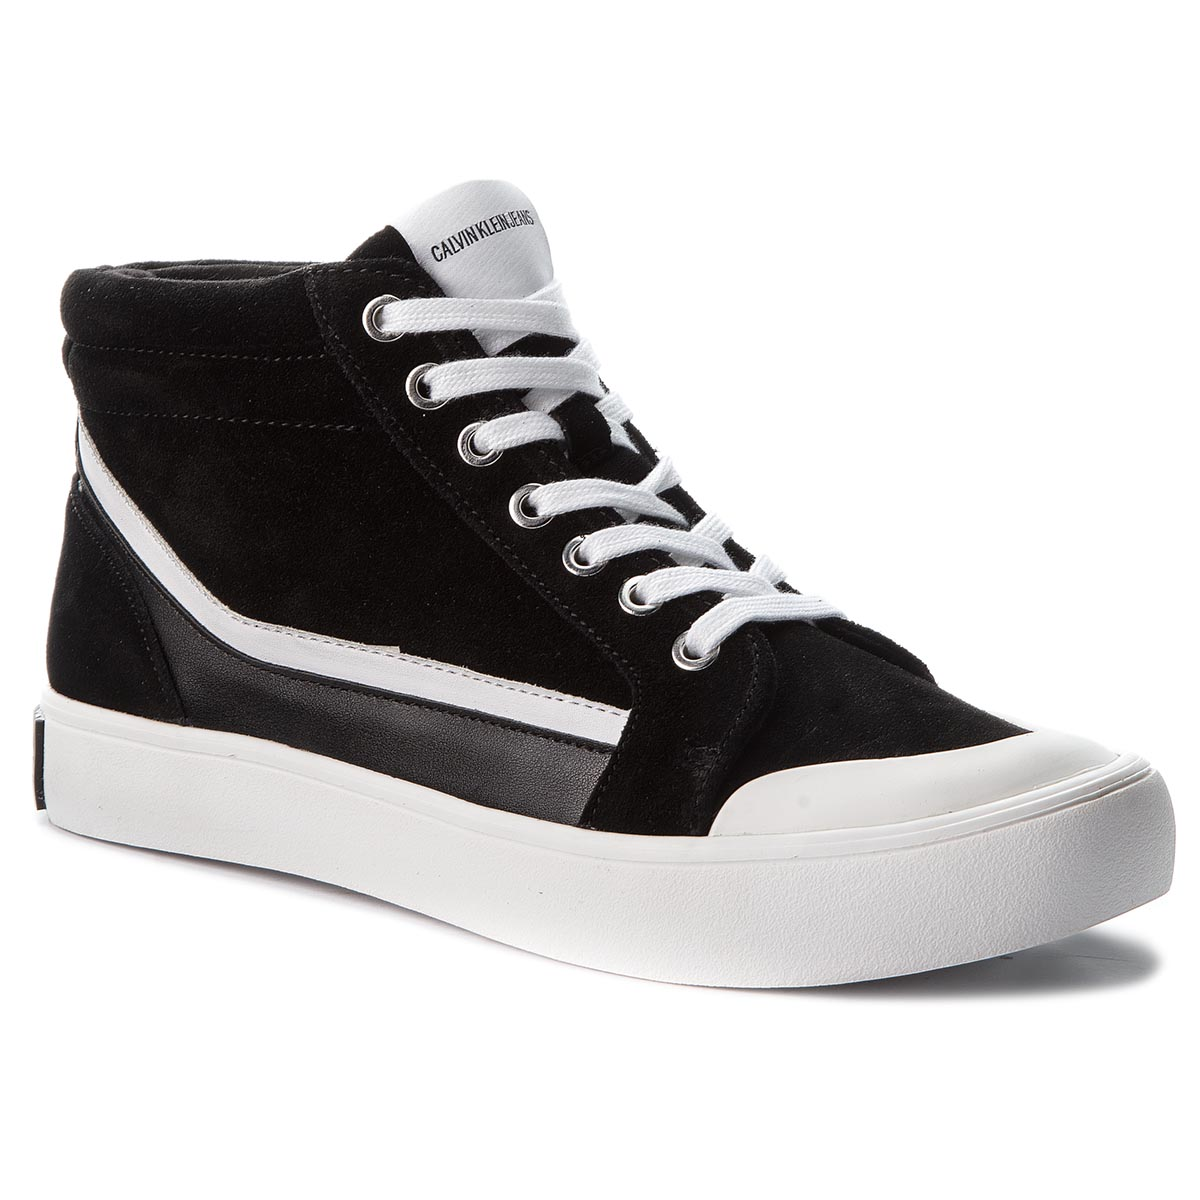 Image of Sneakers CALVIN KLEIN JEANS - Doris R0797 Black/White/Black